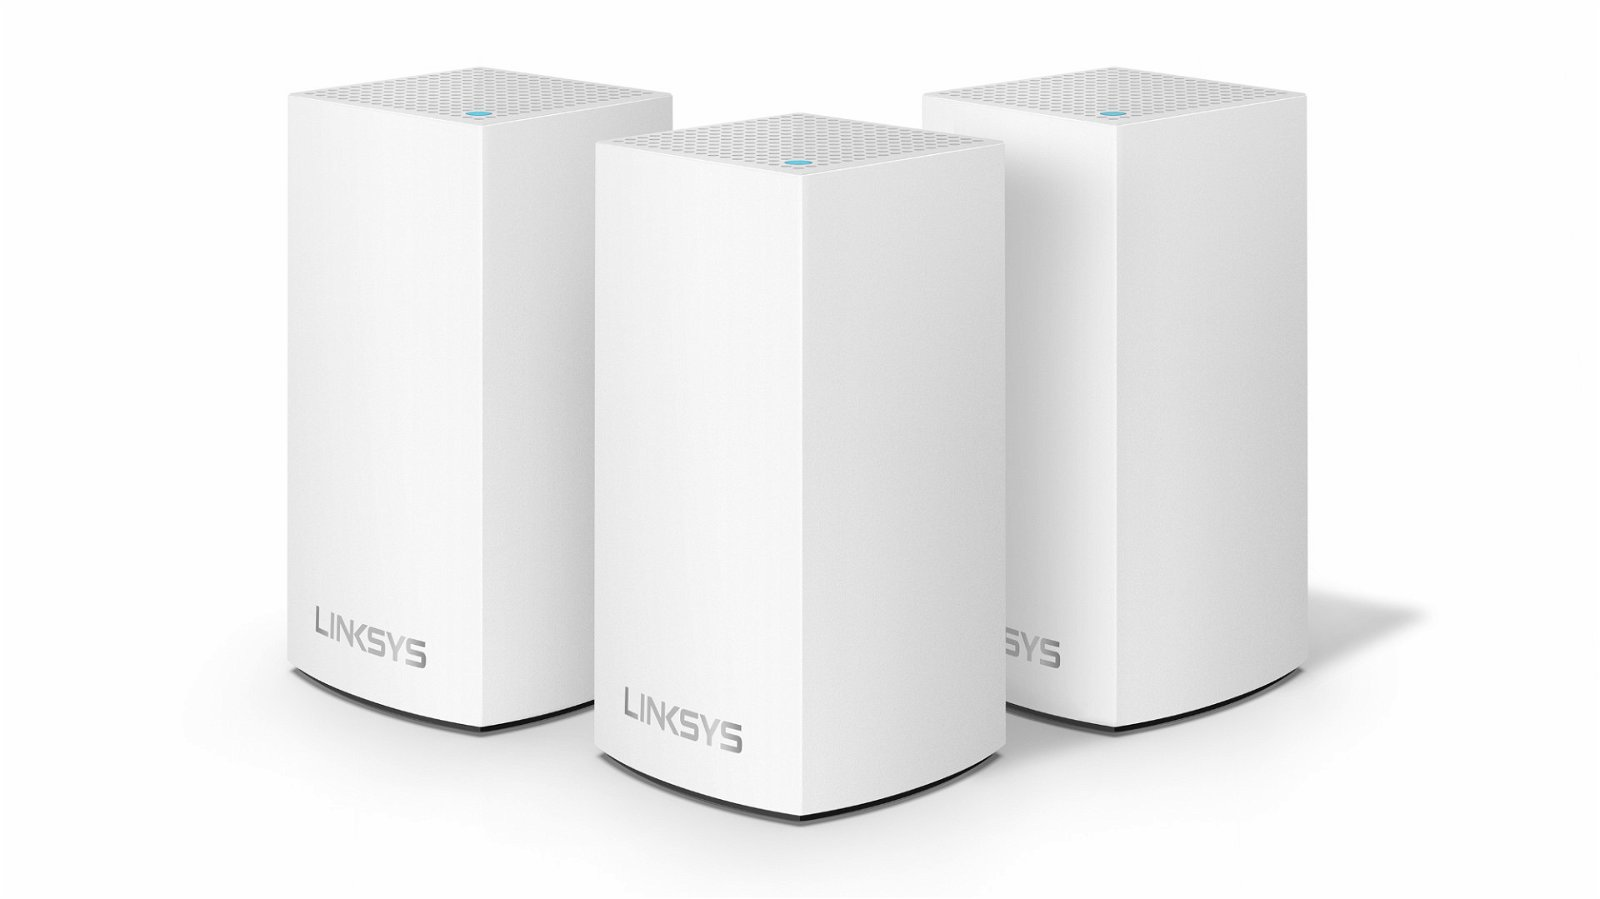 Linksys Announce New, Dual-Band Velop Router Offering